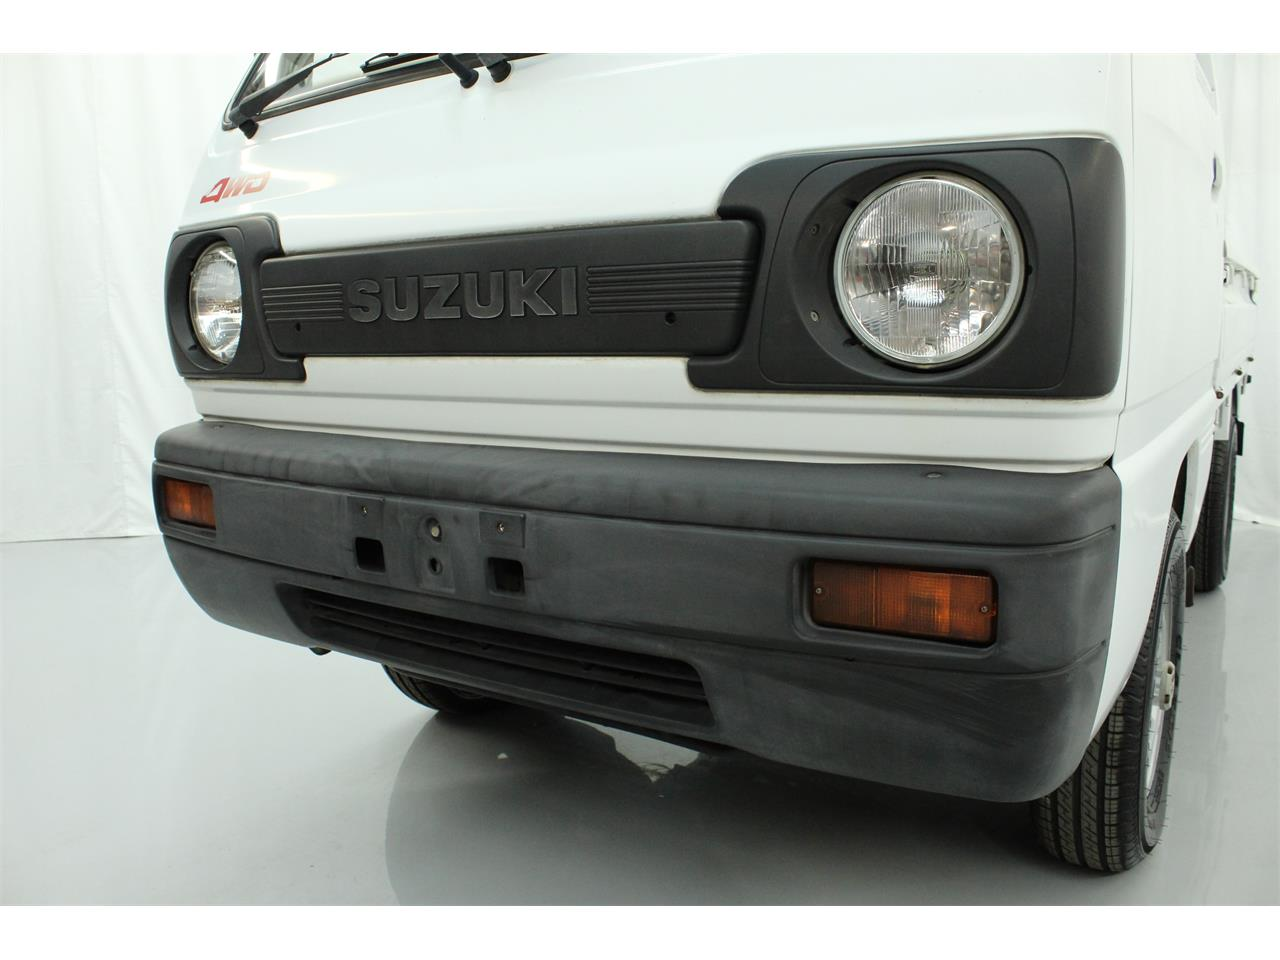 1990 Suzuki Carry for sale in Christiansburg, VA – photo 11